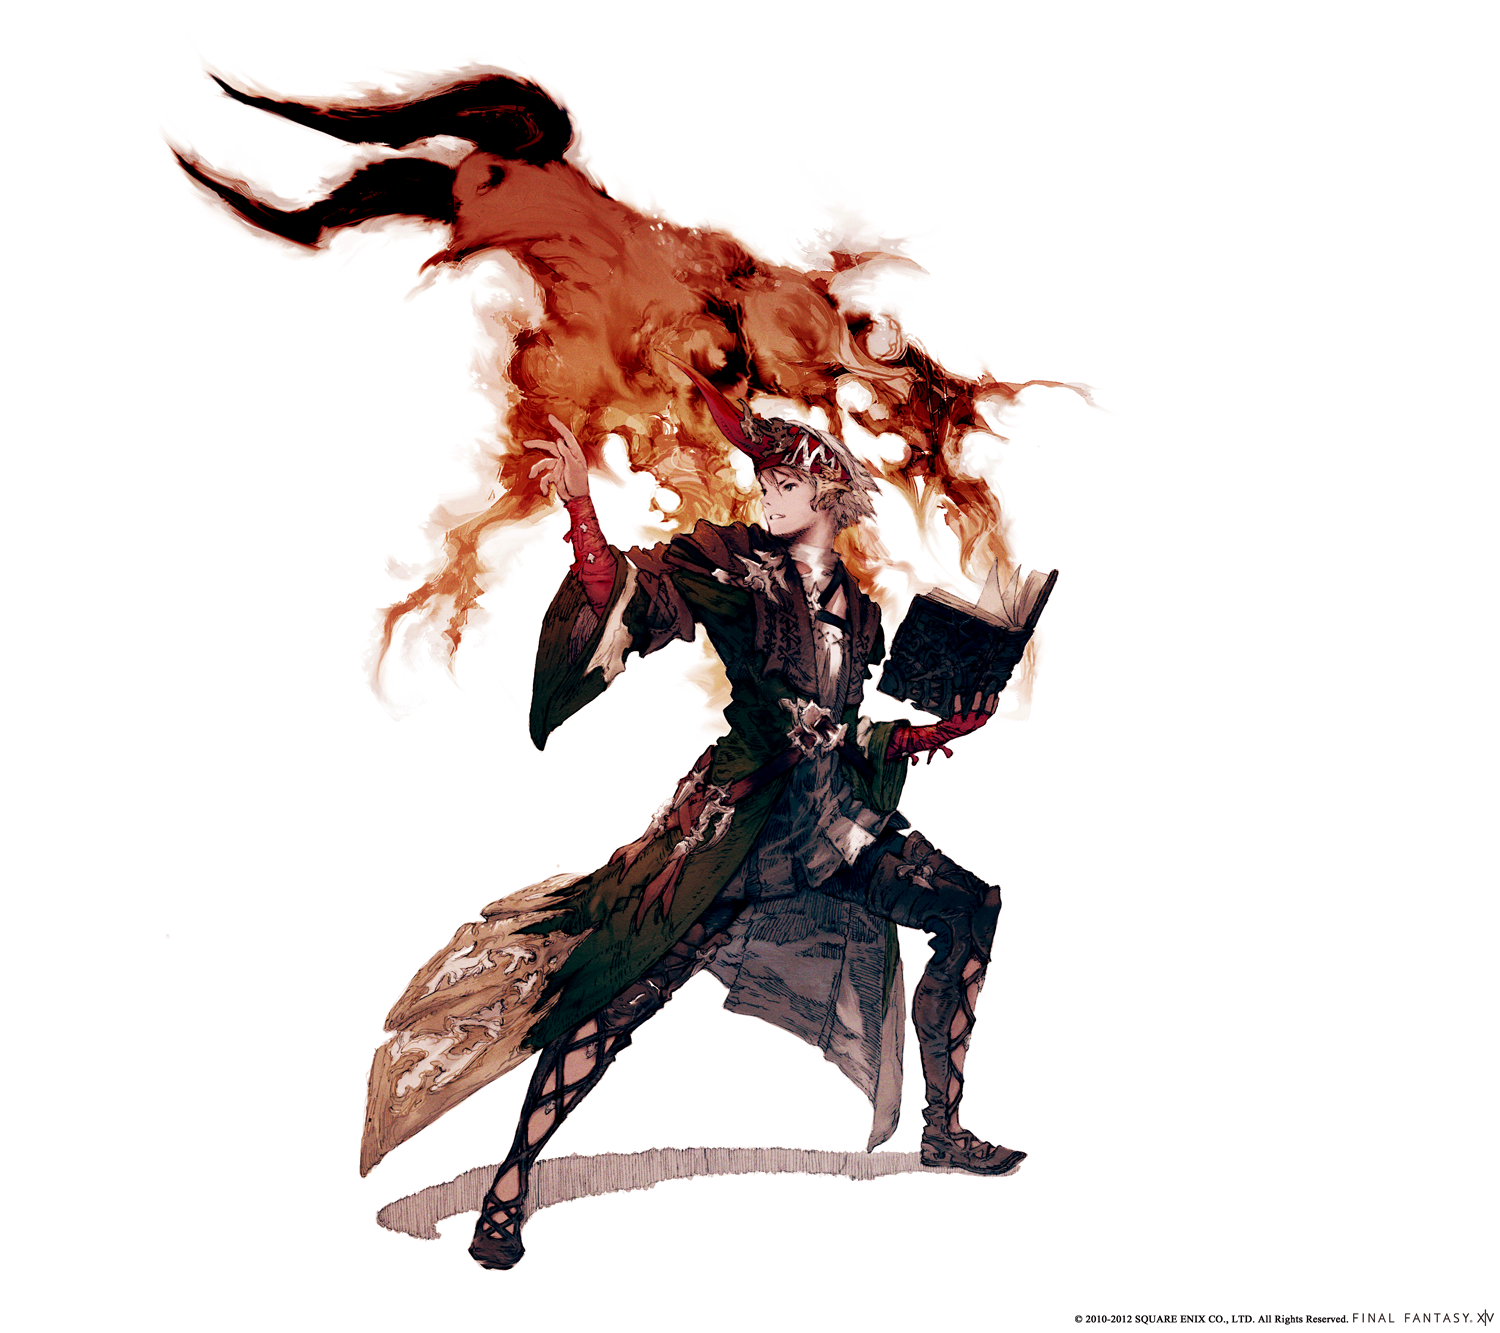 Summoner Job Concept Art From Final Fantasy Xiv A Realm Reborn Final Fantasy Art Final Fantasy Xiv Concept Art Characters